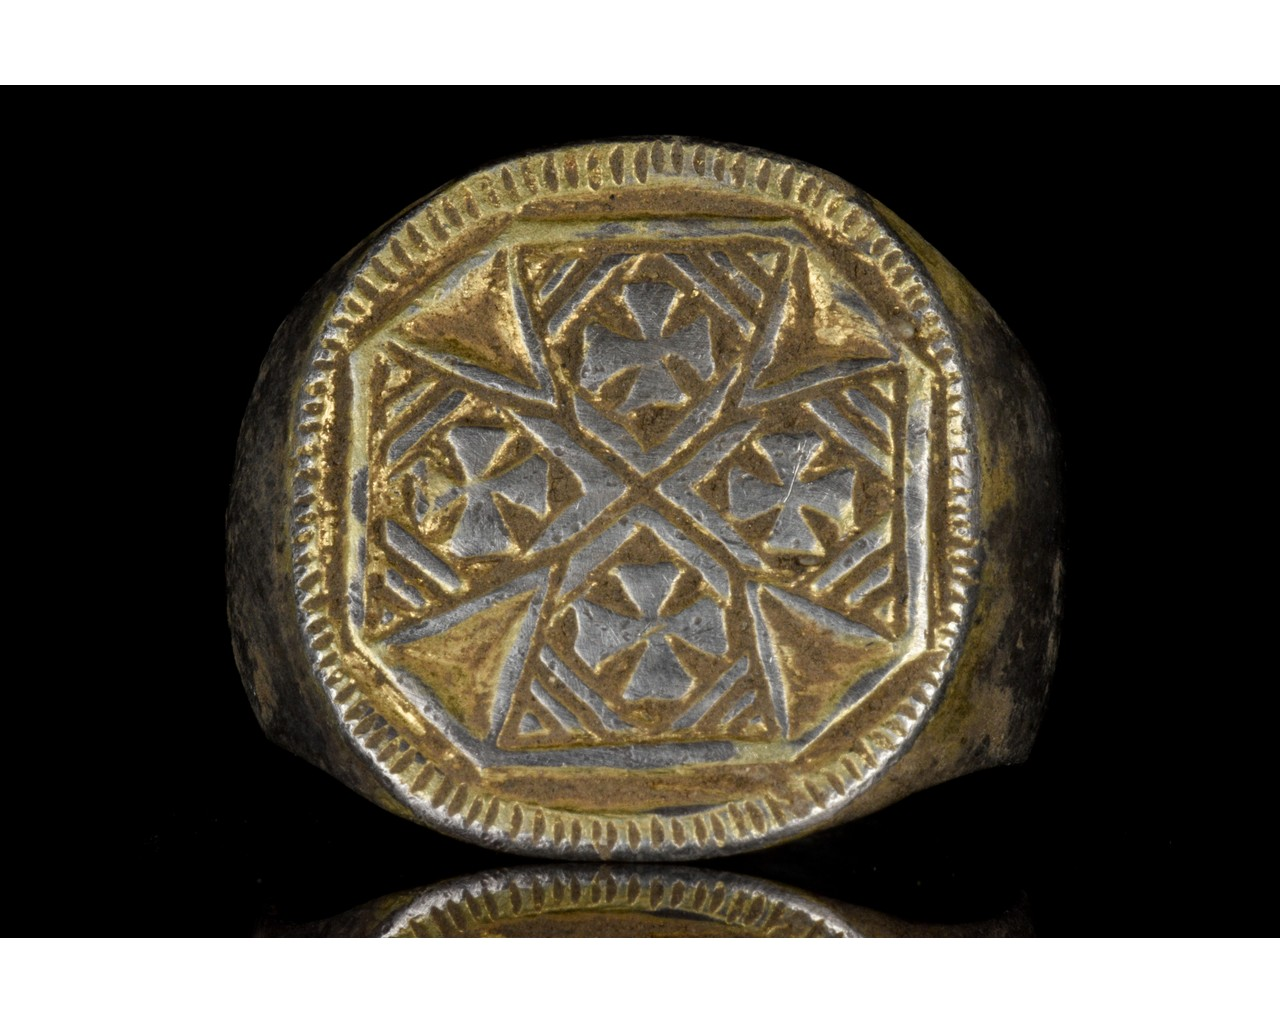 MEDIEVAL SILVER RING WITH MULTIPLE MALTESE CROSSES - Image 2 of 6